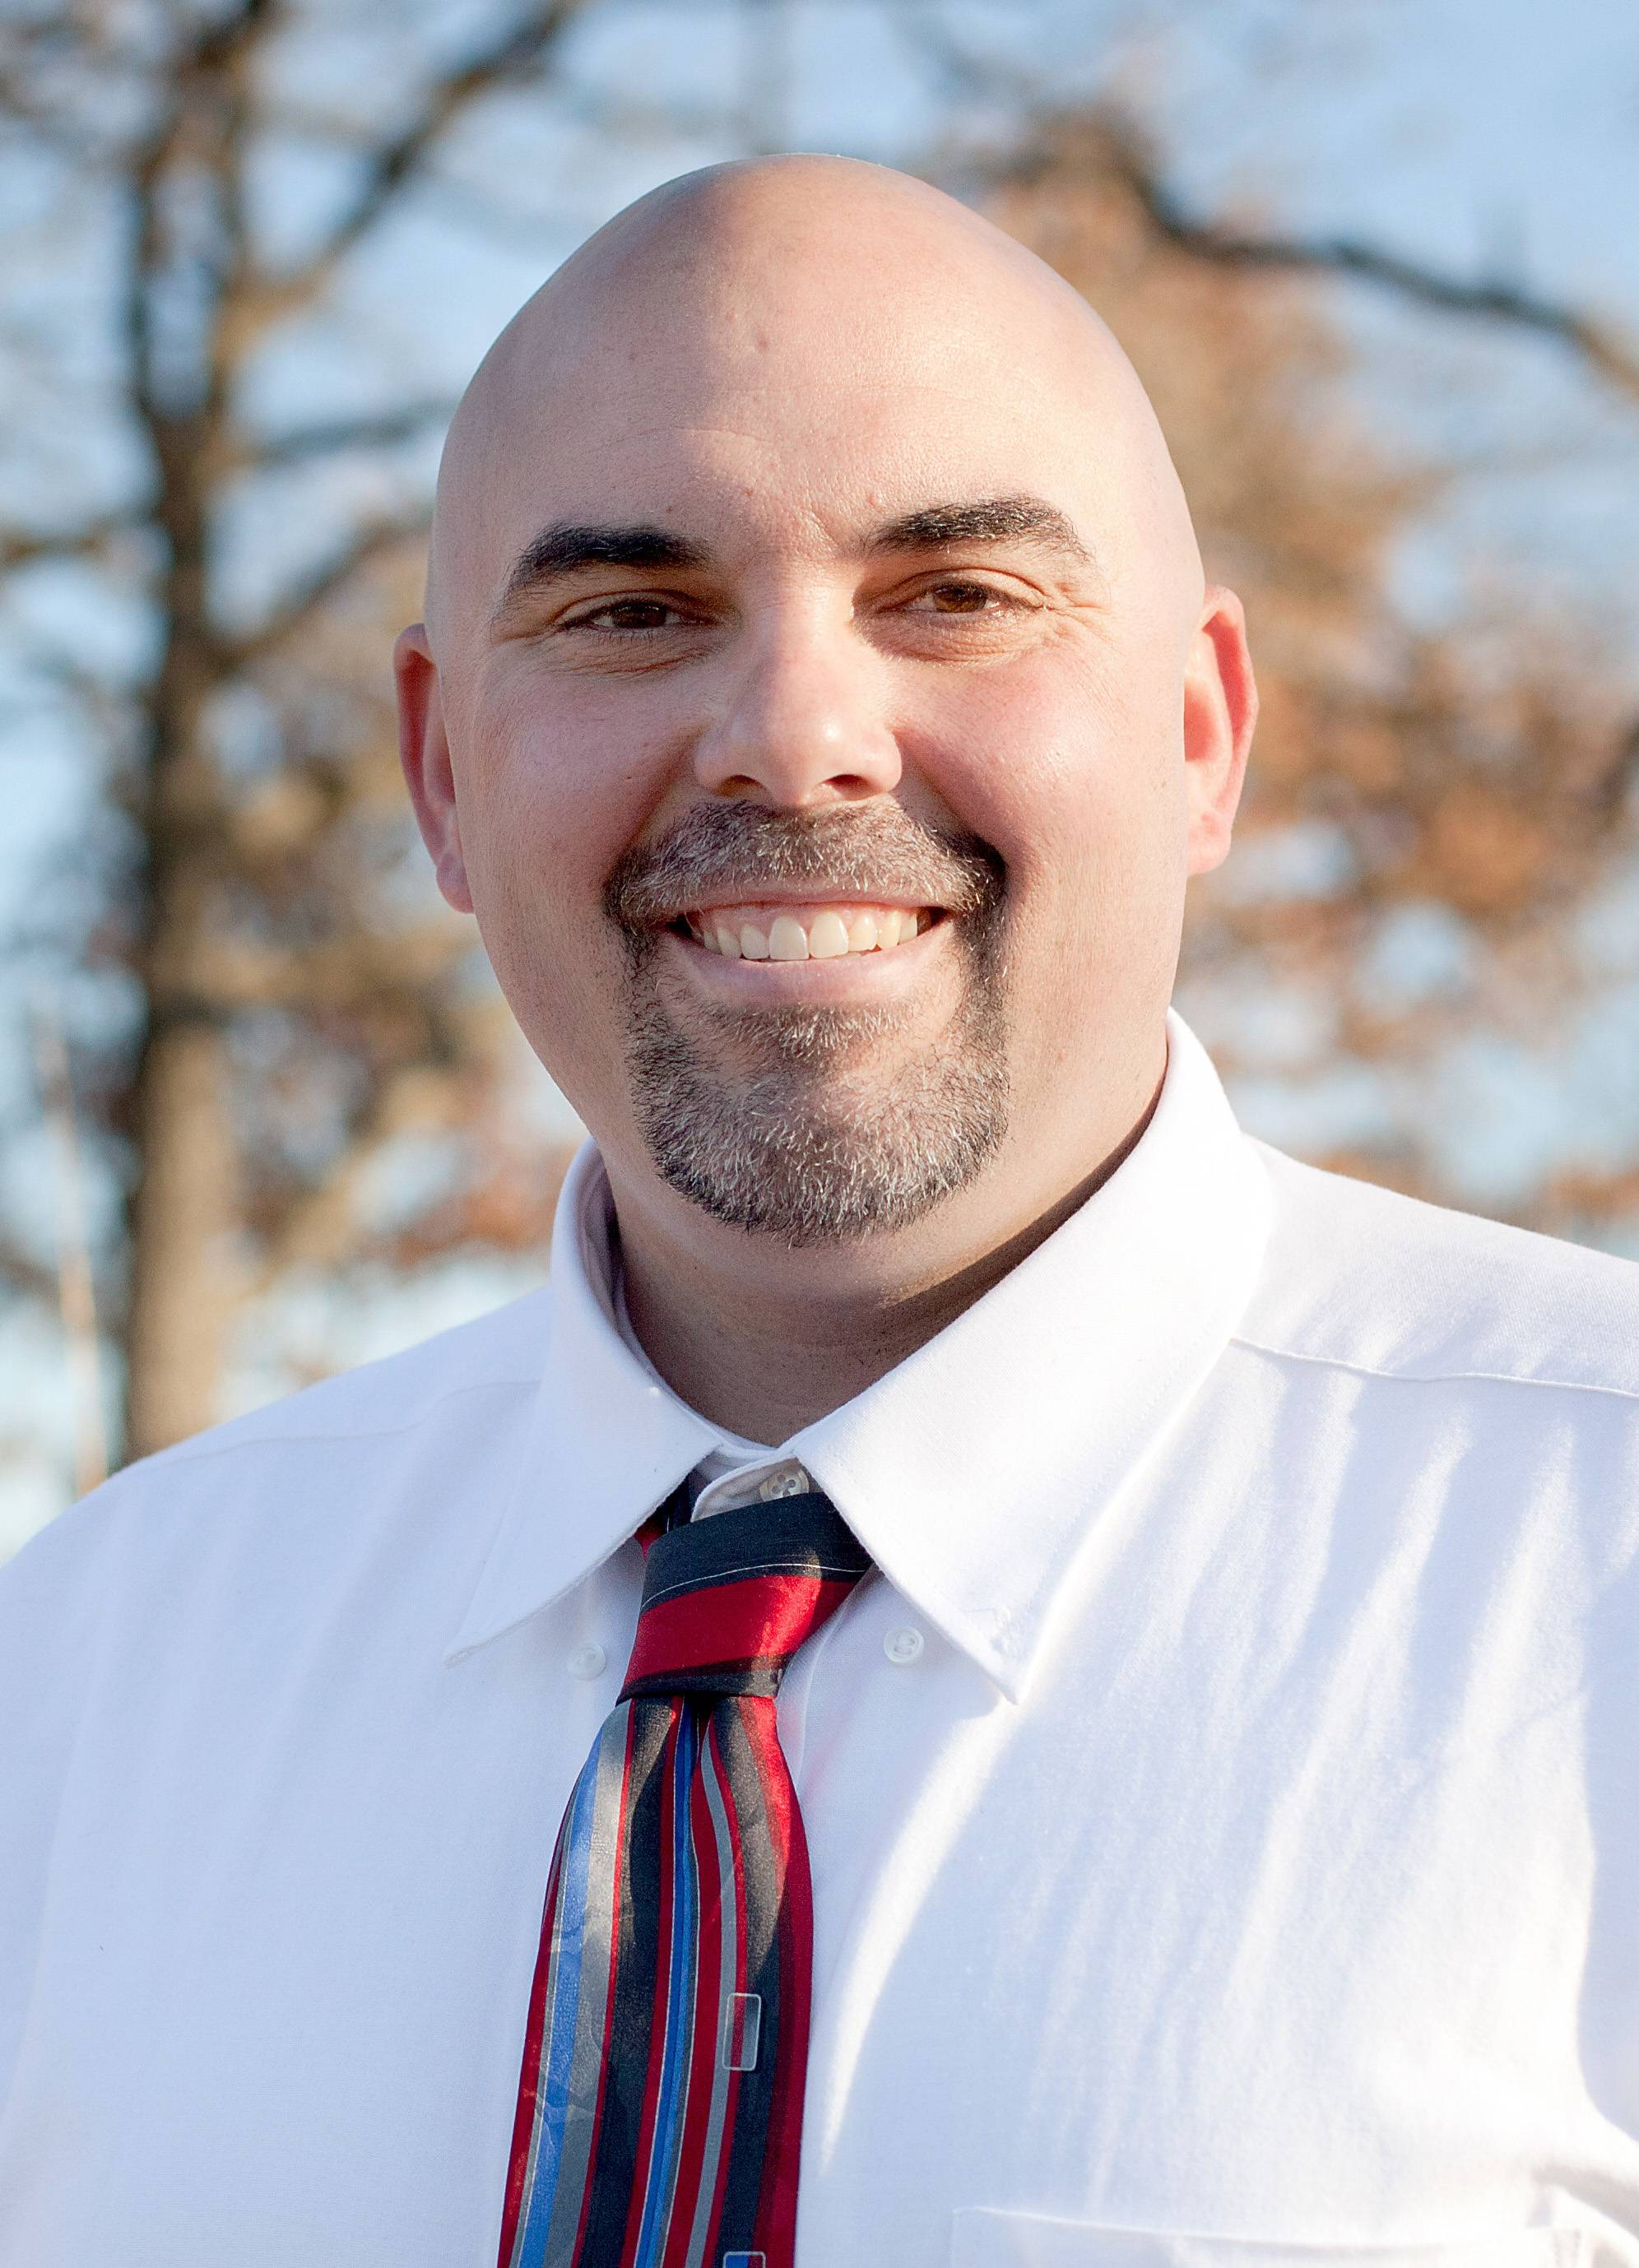 Ryan Heuser, running for McHenry County board District 6